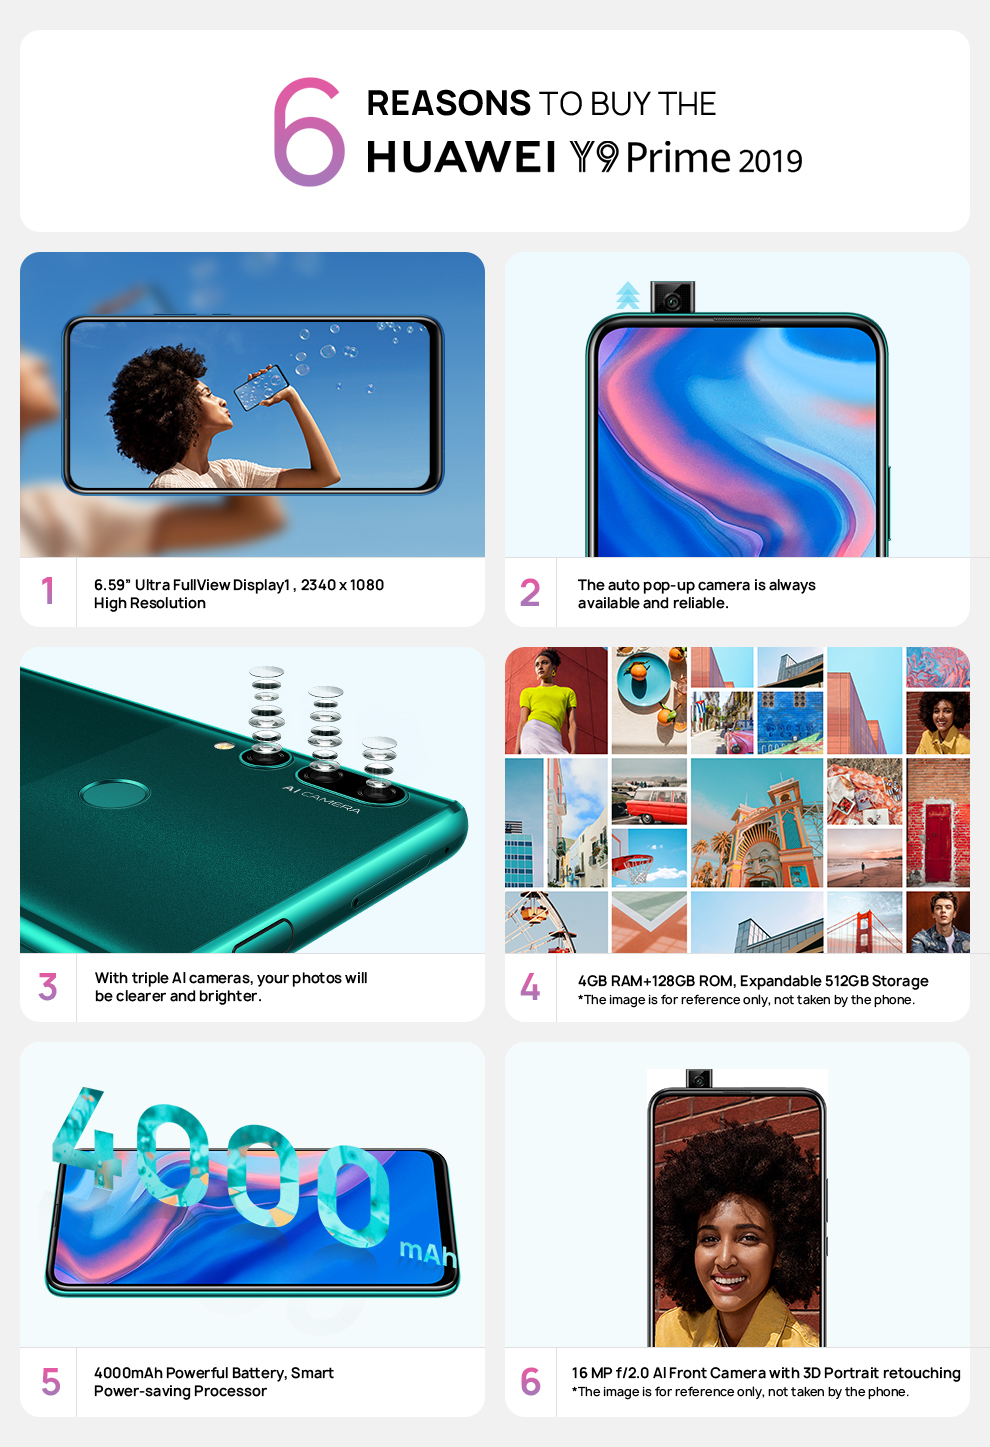 PRE-ORDER Huawei Y9 Prime 2019 128GB ROM 4GB RAM with Free Bluetooth  Speaker and 10,000mah PowerBank